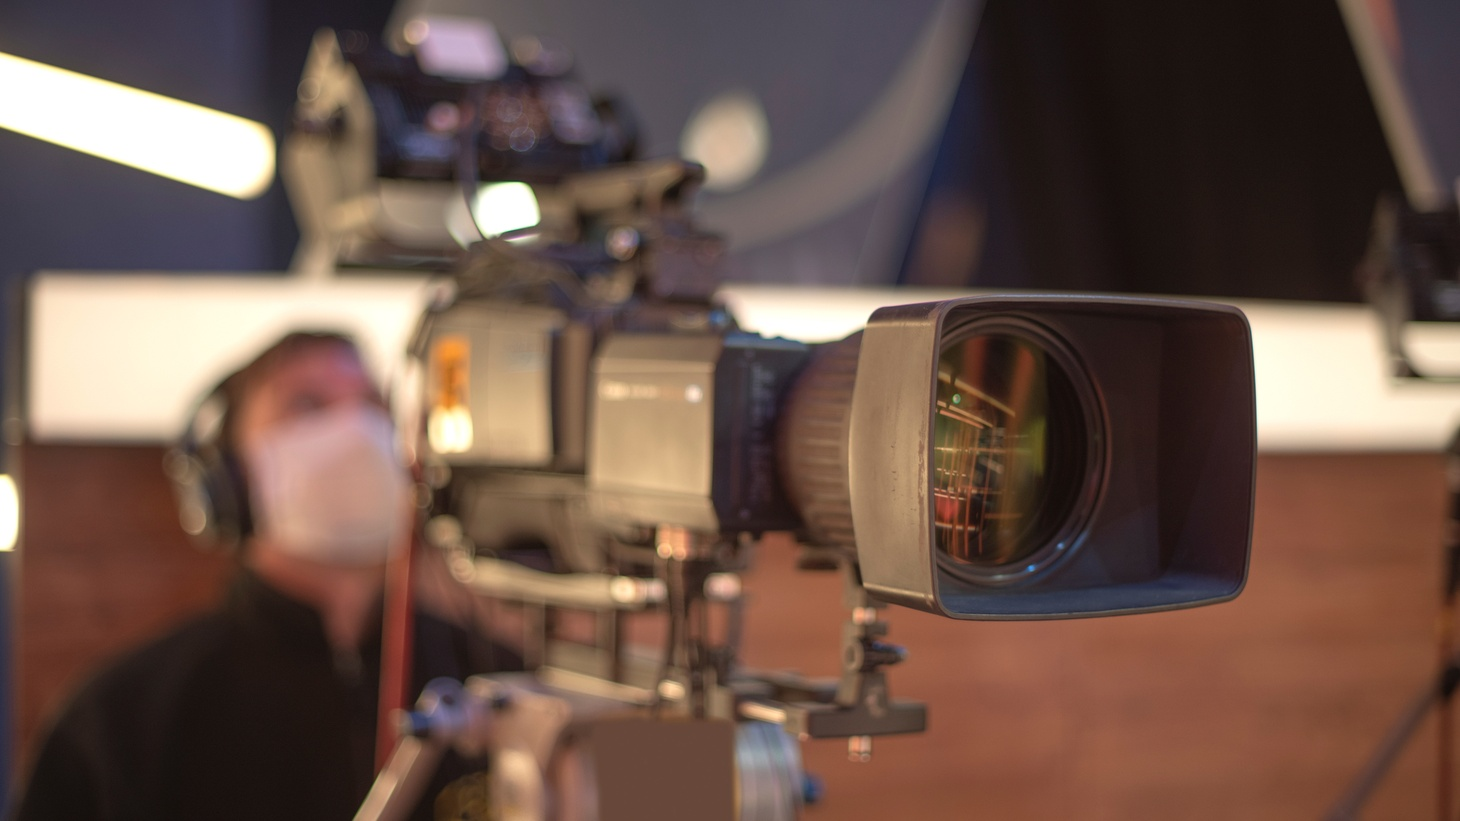 A masked cameraman films a television show in a studio.